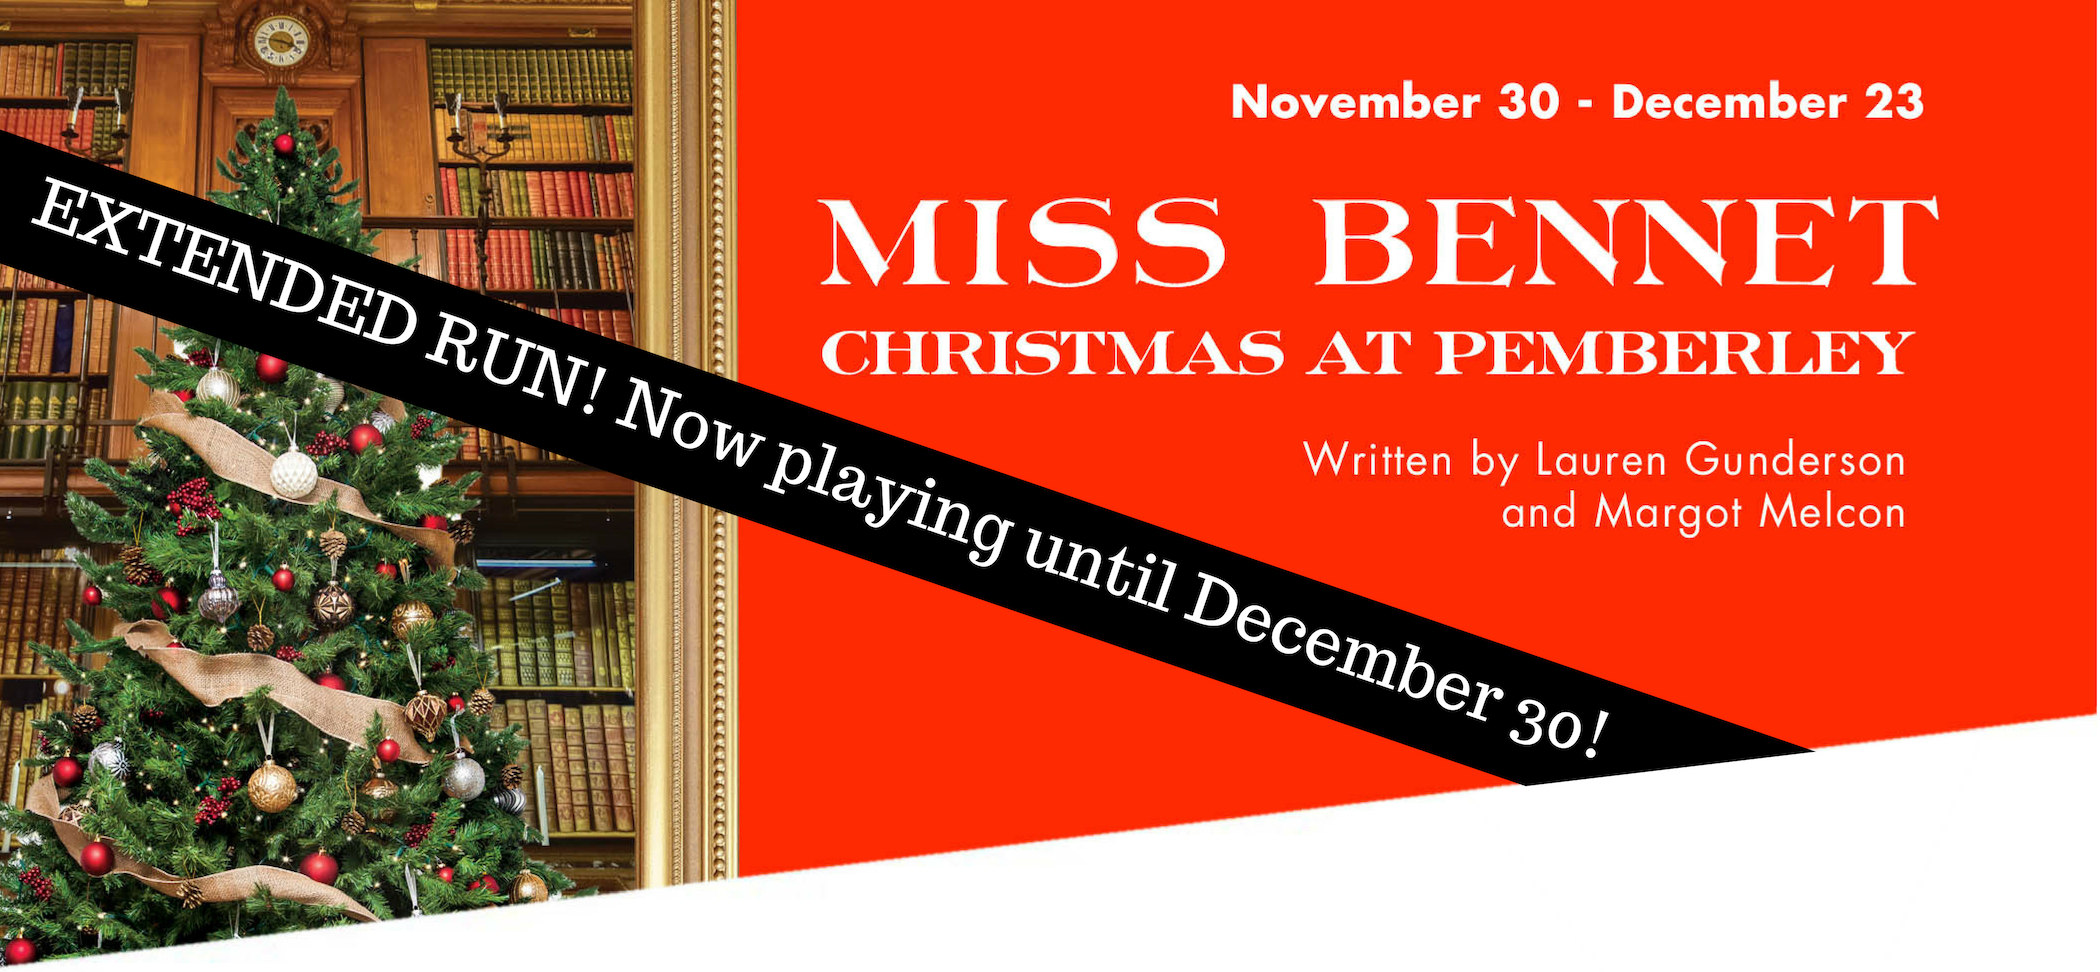 Christmas At Pemberley.Miss Bennet Christmas At Pemberley The Classic Theatre Of